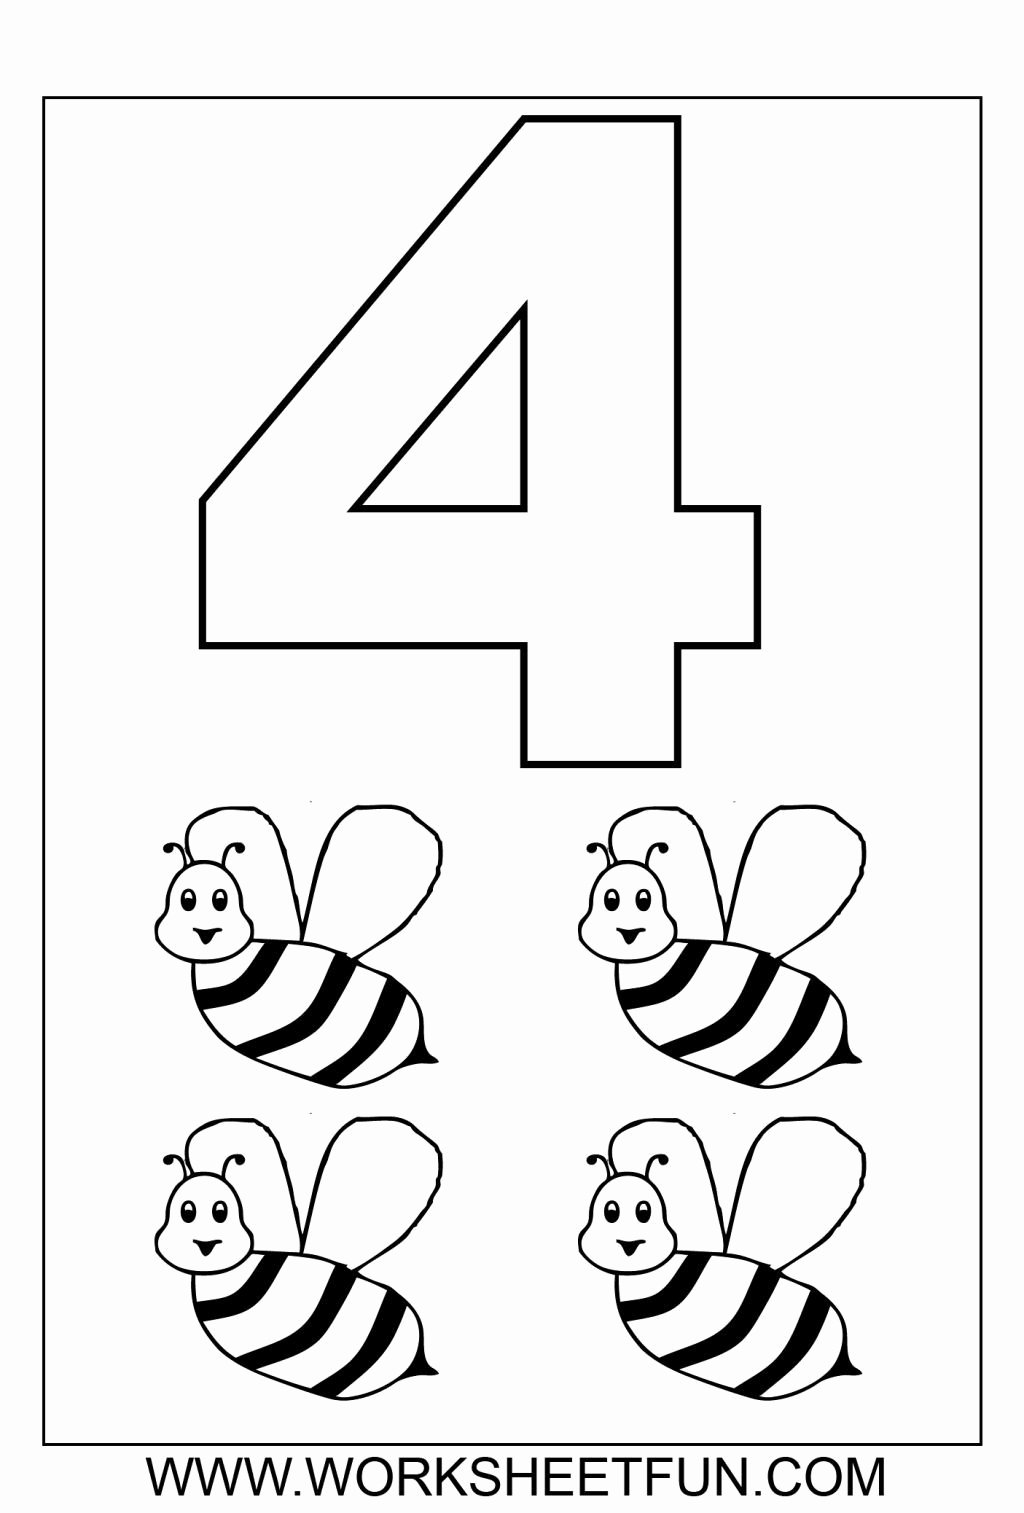 Coloring Worksheets for Preschoolers Numbers Free Number 3 Coloring Sheet